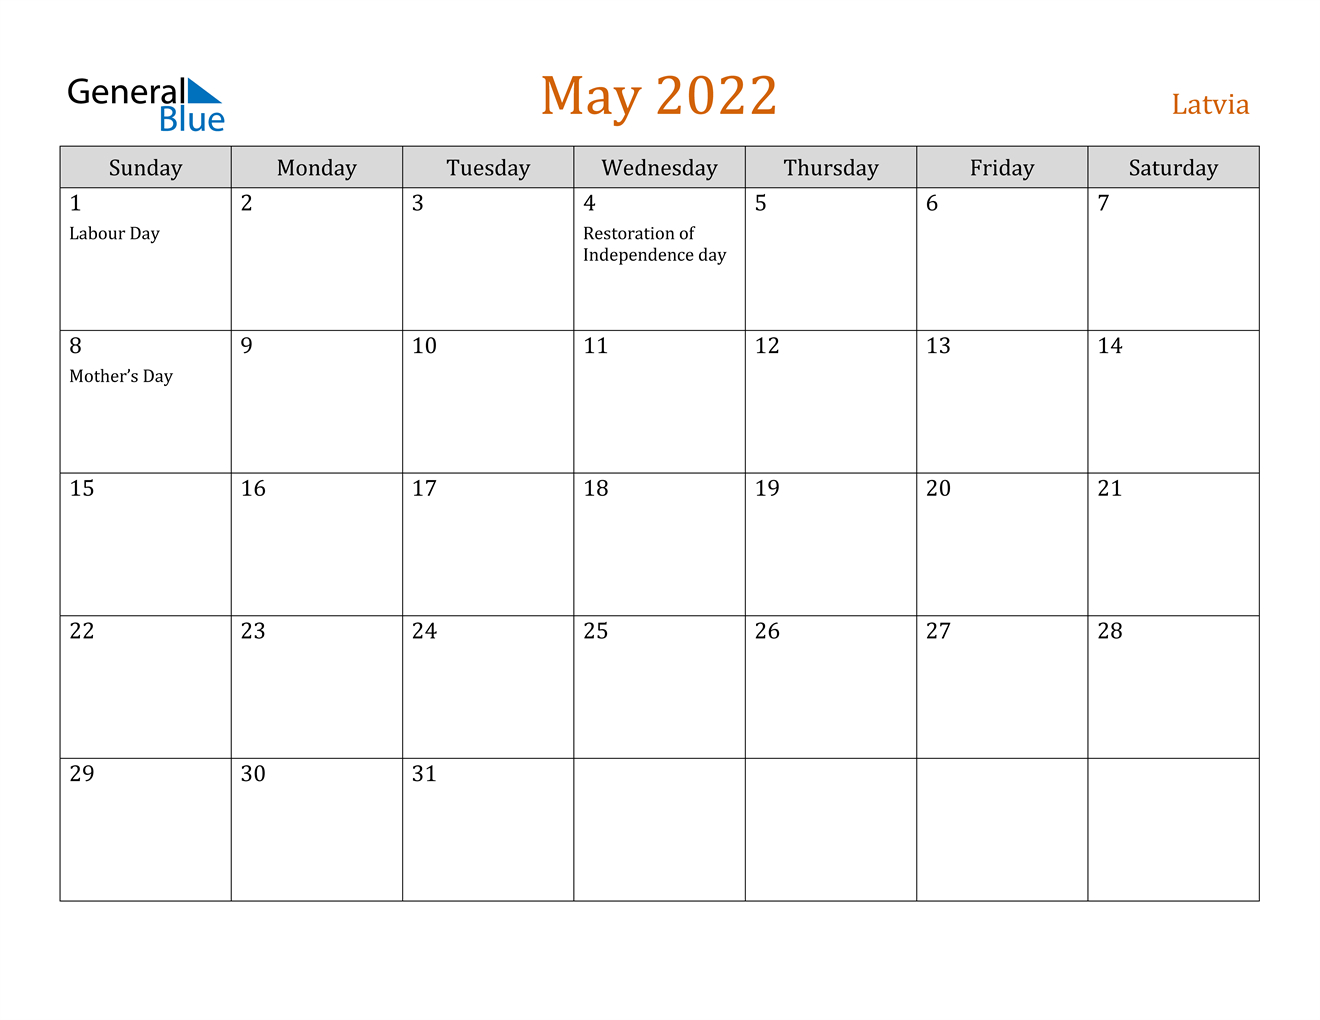 May 2022 Calendar - Latvia with regard to January 2022 Free Month At A Glance Planner.pdf Photo